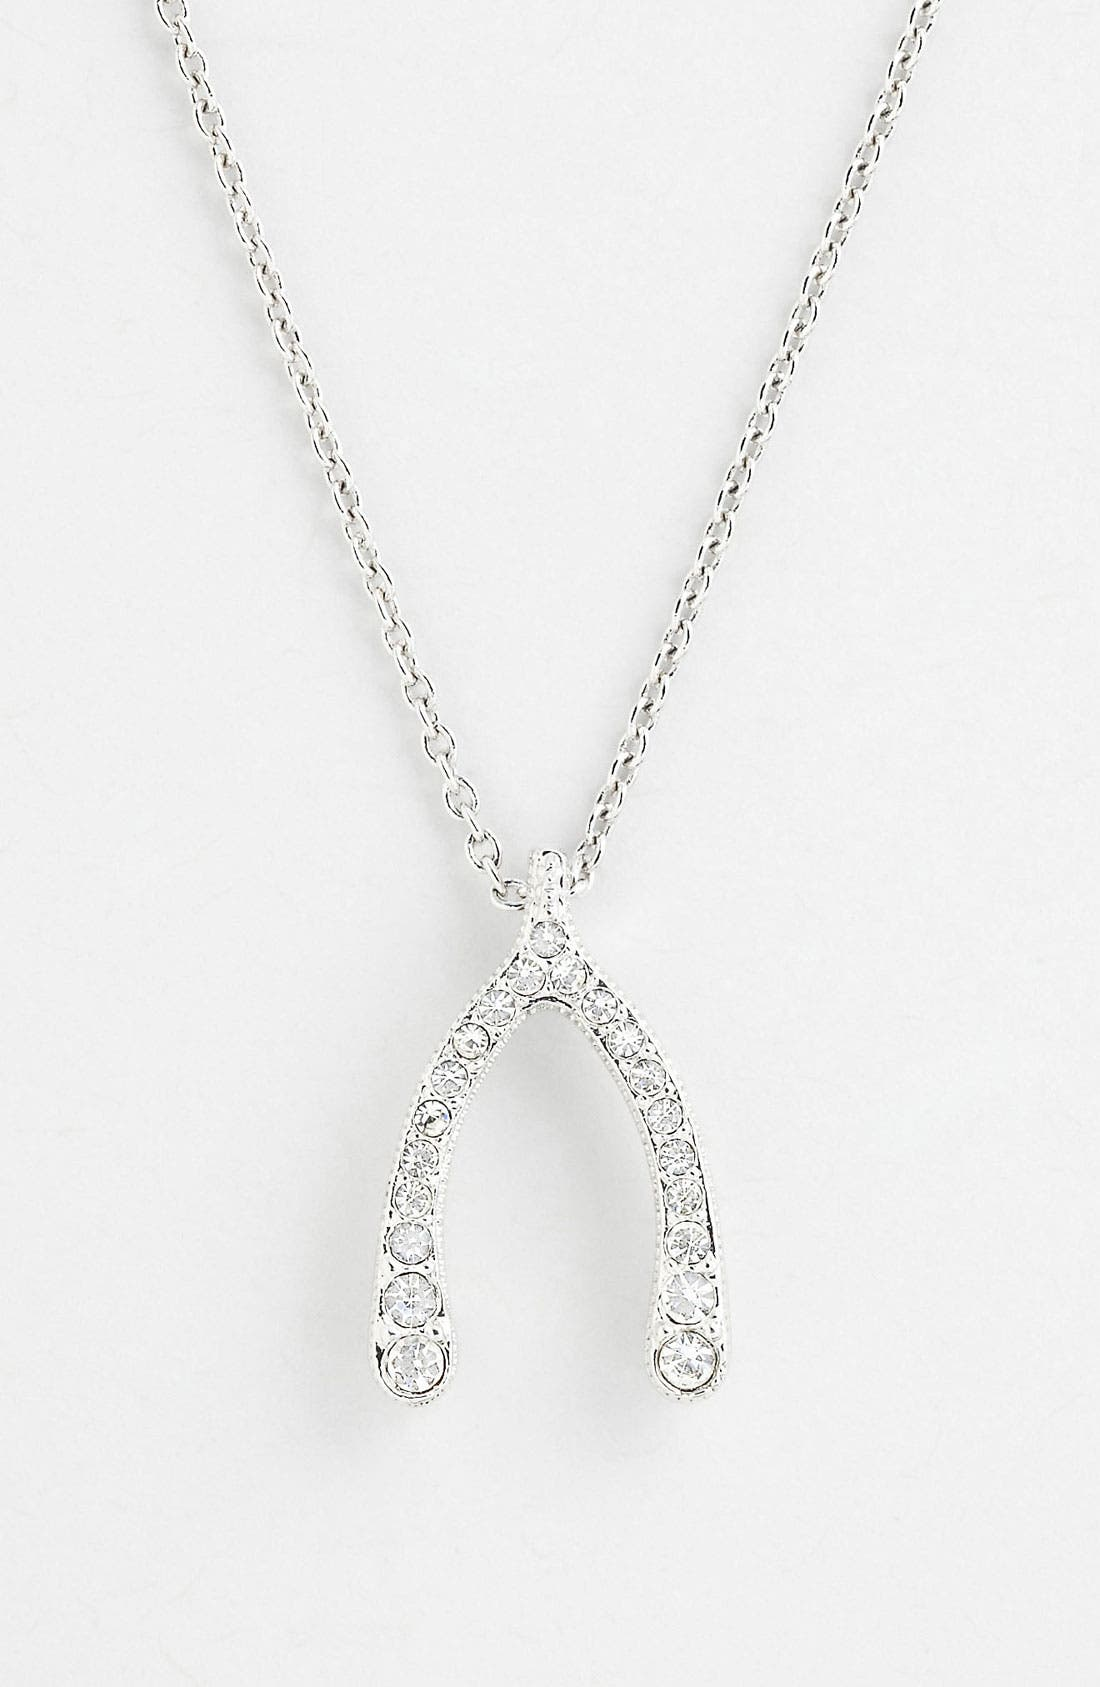 Alternate Image 1 Selected - Nadri 'Wishbone' Pendant Necklace (Nordstrom Exclusive)